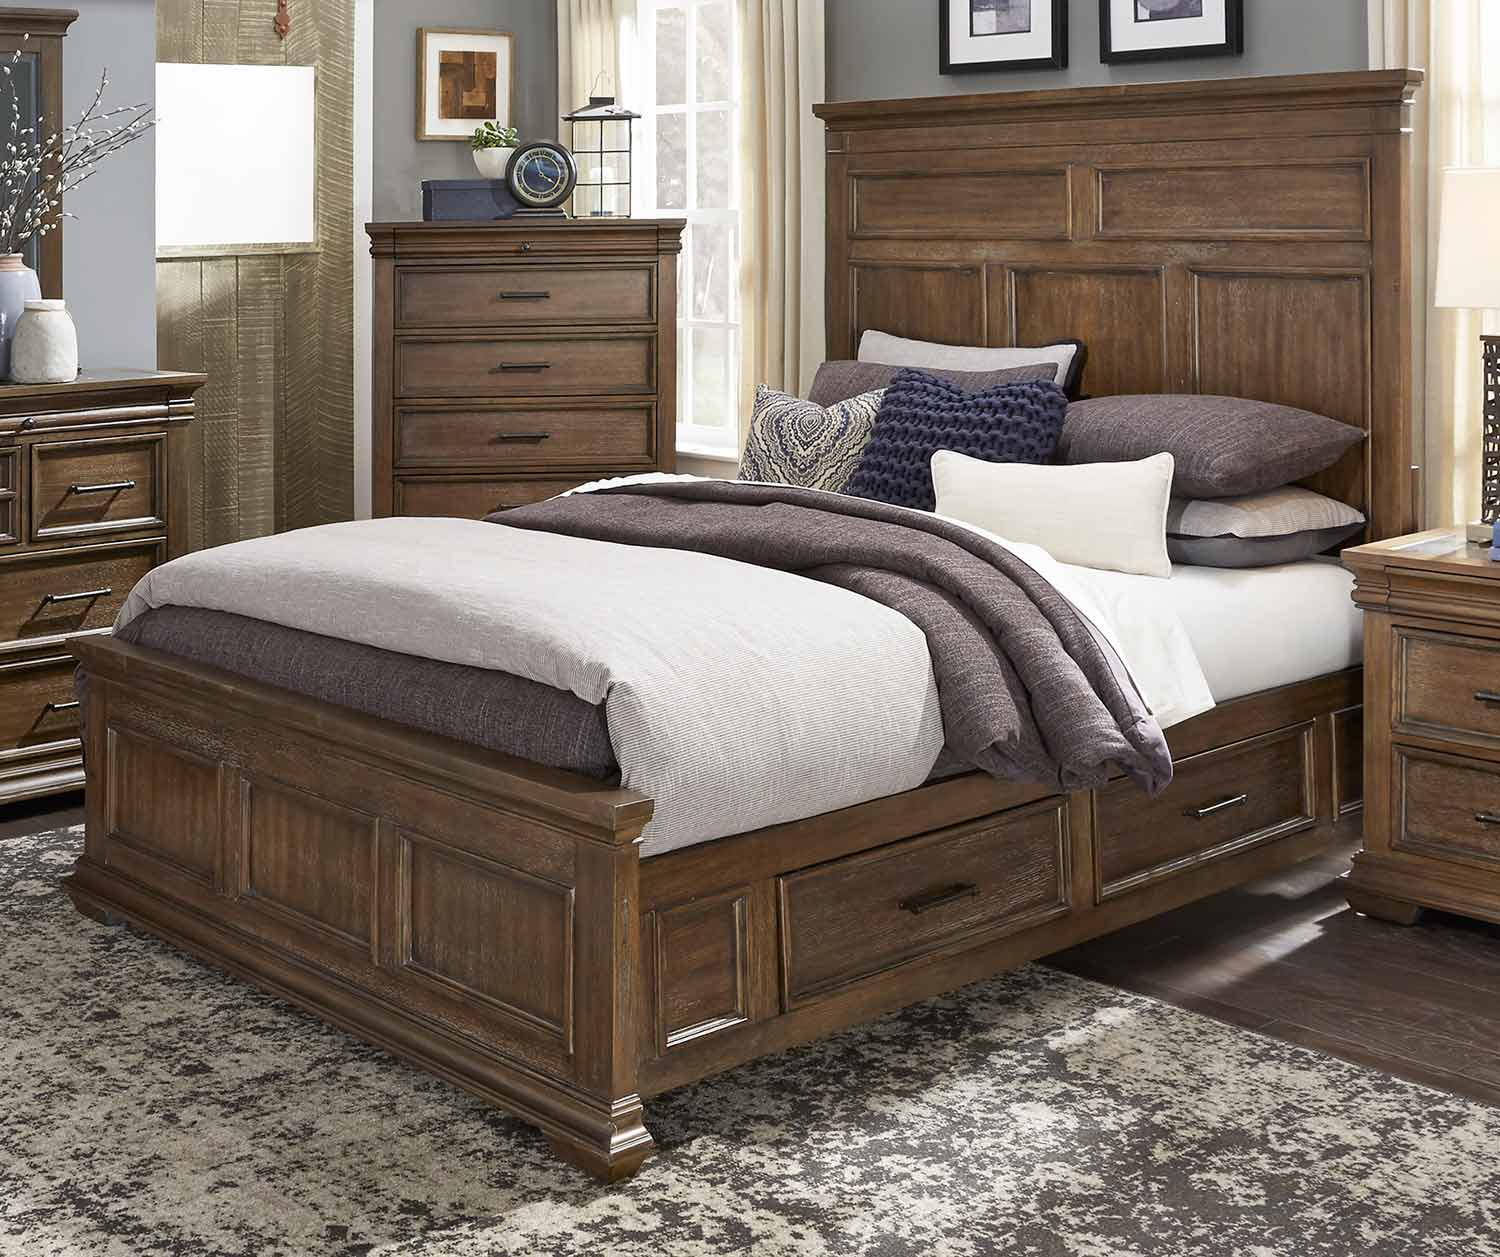 Homelegance Narcine Platform Bed with Storage Drawers